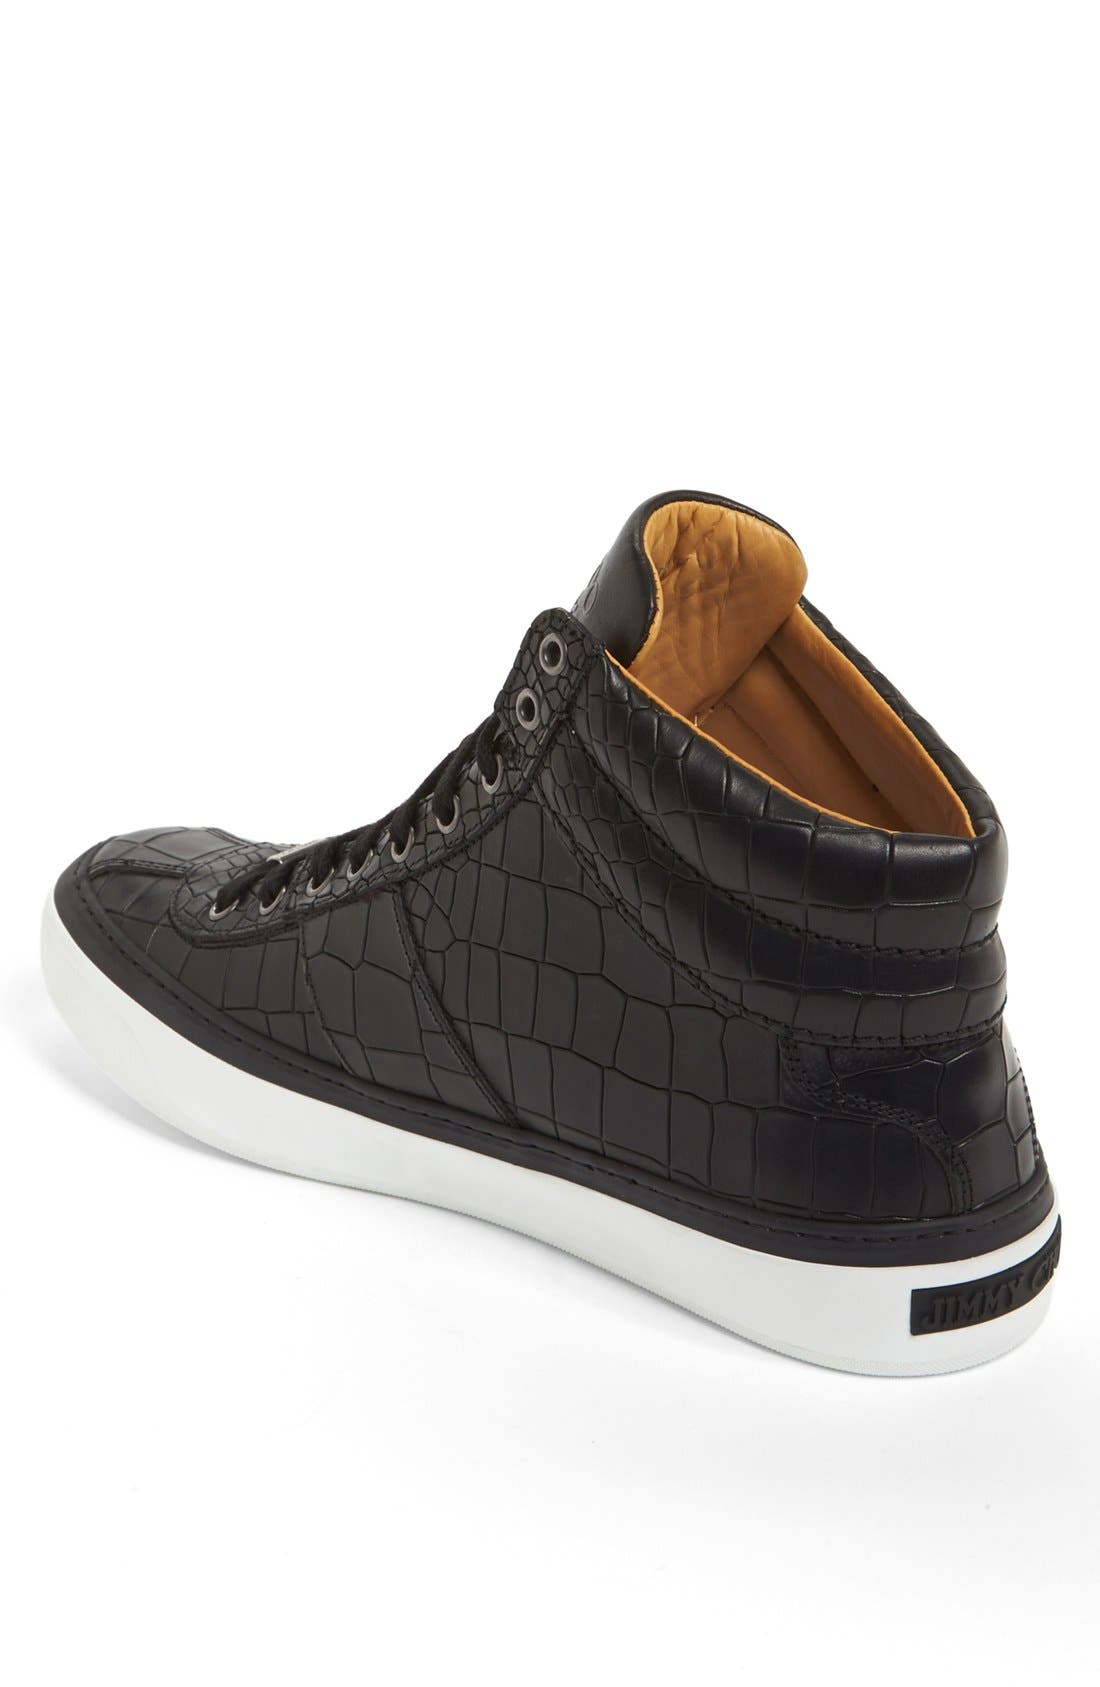 Belgravia High Top Sneaker,                             Alternate thumbnail 7, color,